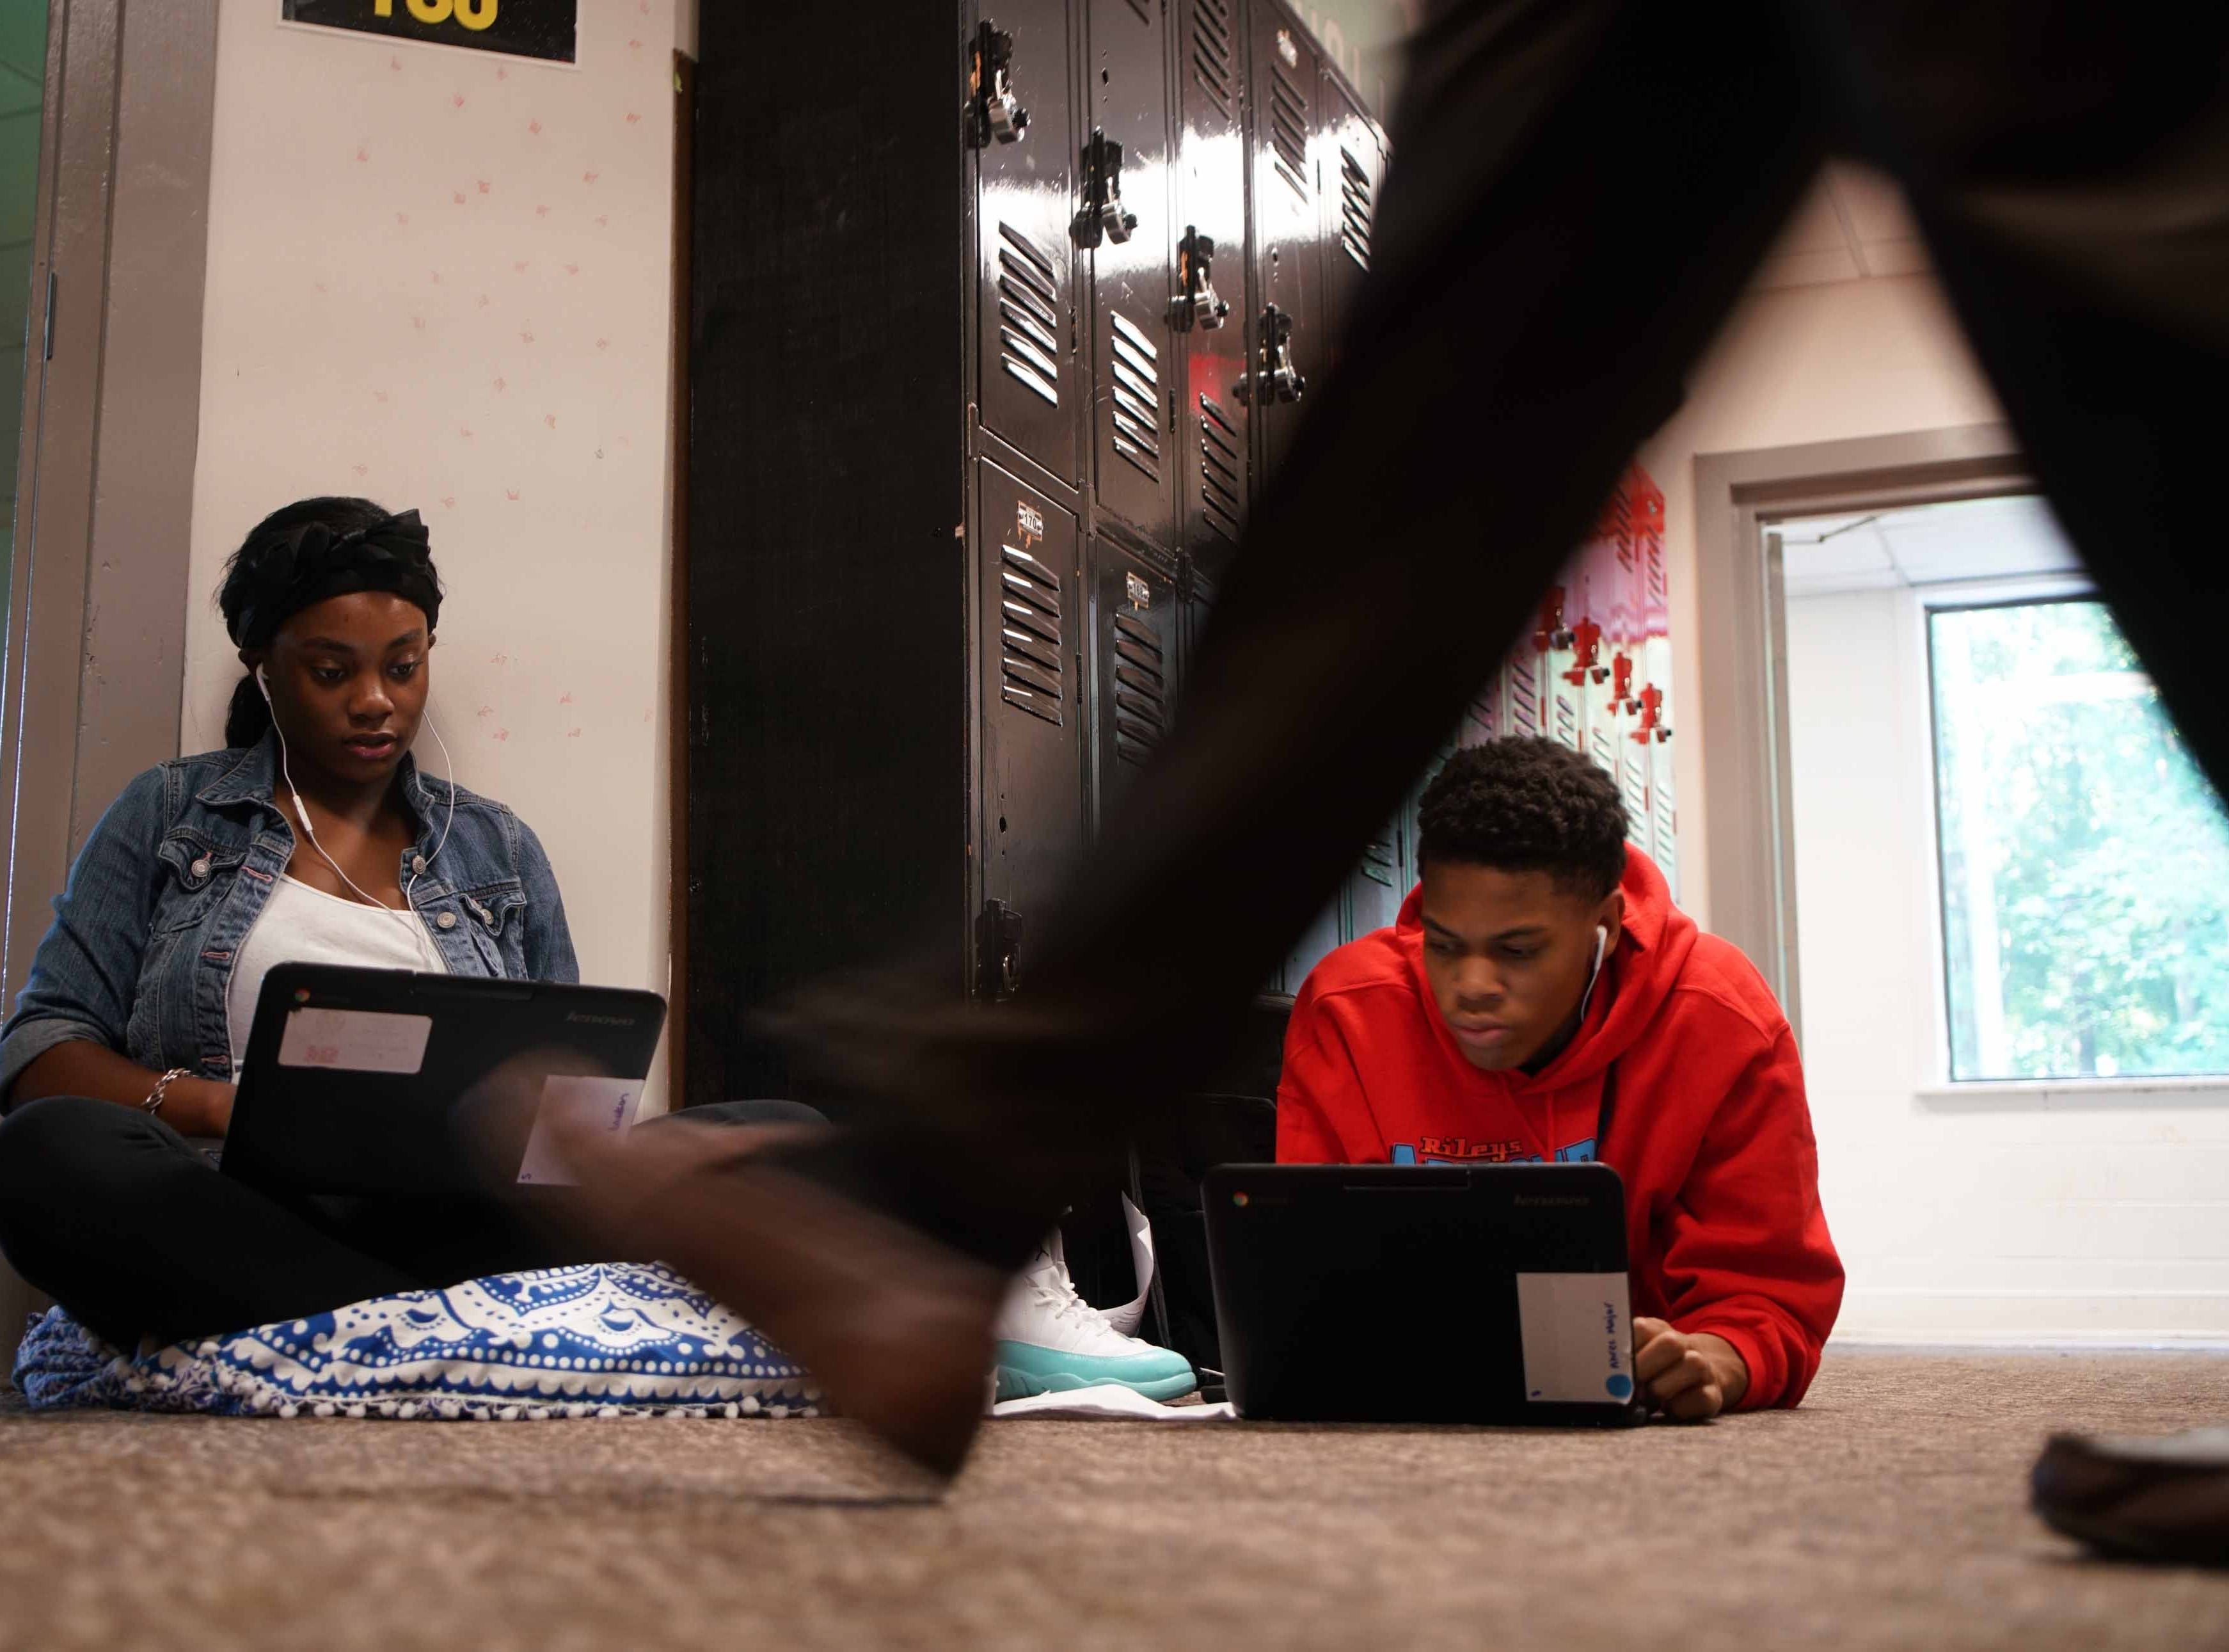 Jilisa Leibert, 15, a freshman, and Christopher Miller, 17, a senior at the Design Thinking Academy, work on a class assignment in the hallway.